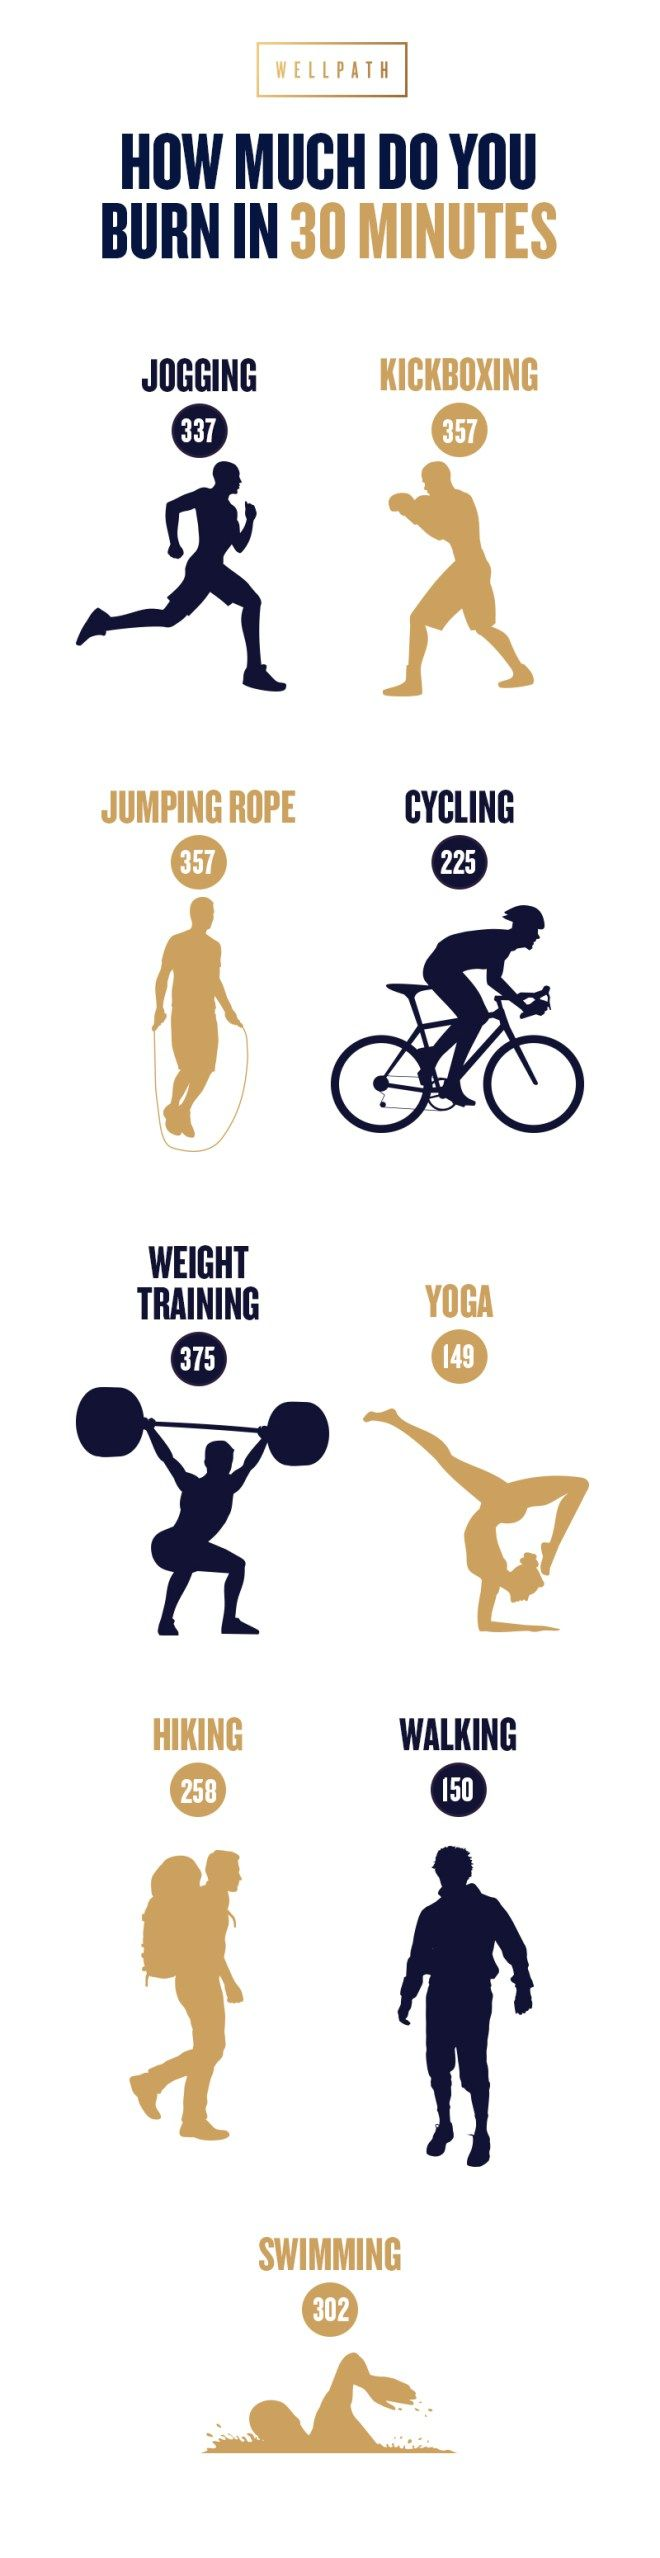 As much as we'd love for it to be the case, not all workouts are created equal. And while any exercise is good exercise, there (unsurprisingly) happens to be a bit of a hierarchy when it comes to calorie burn. Check out our breakdown of how different workouts stack up against each other. And maybe get a jump rope and some boxing gloves, too.